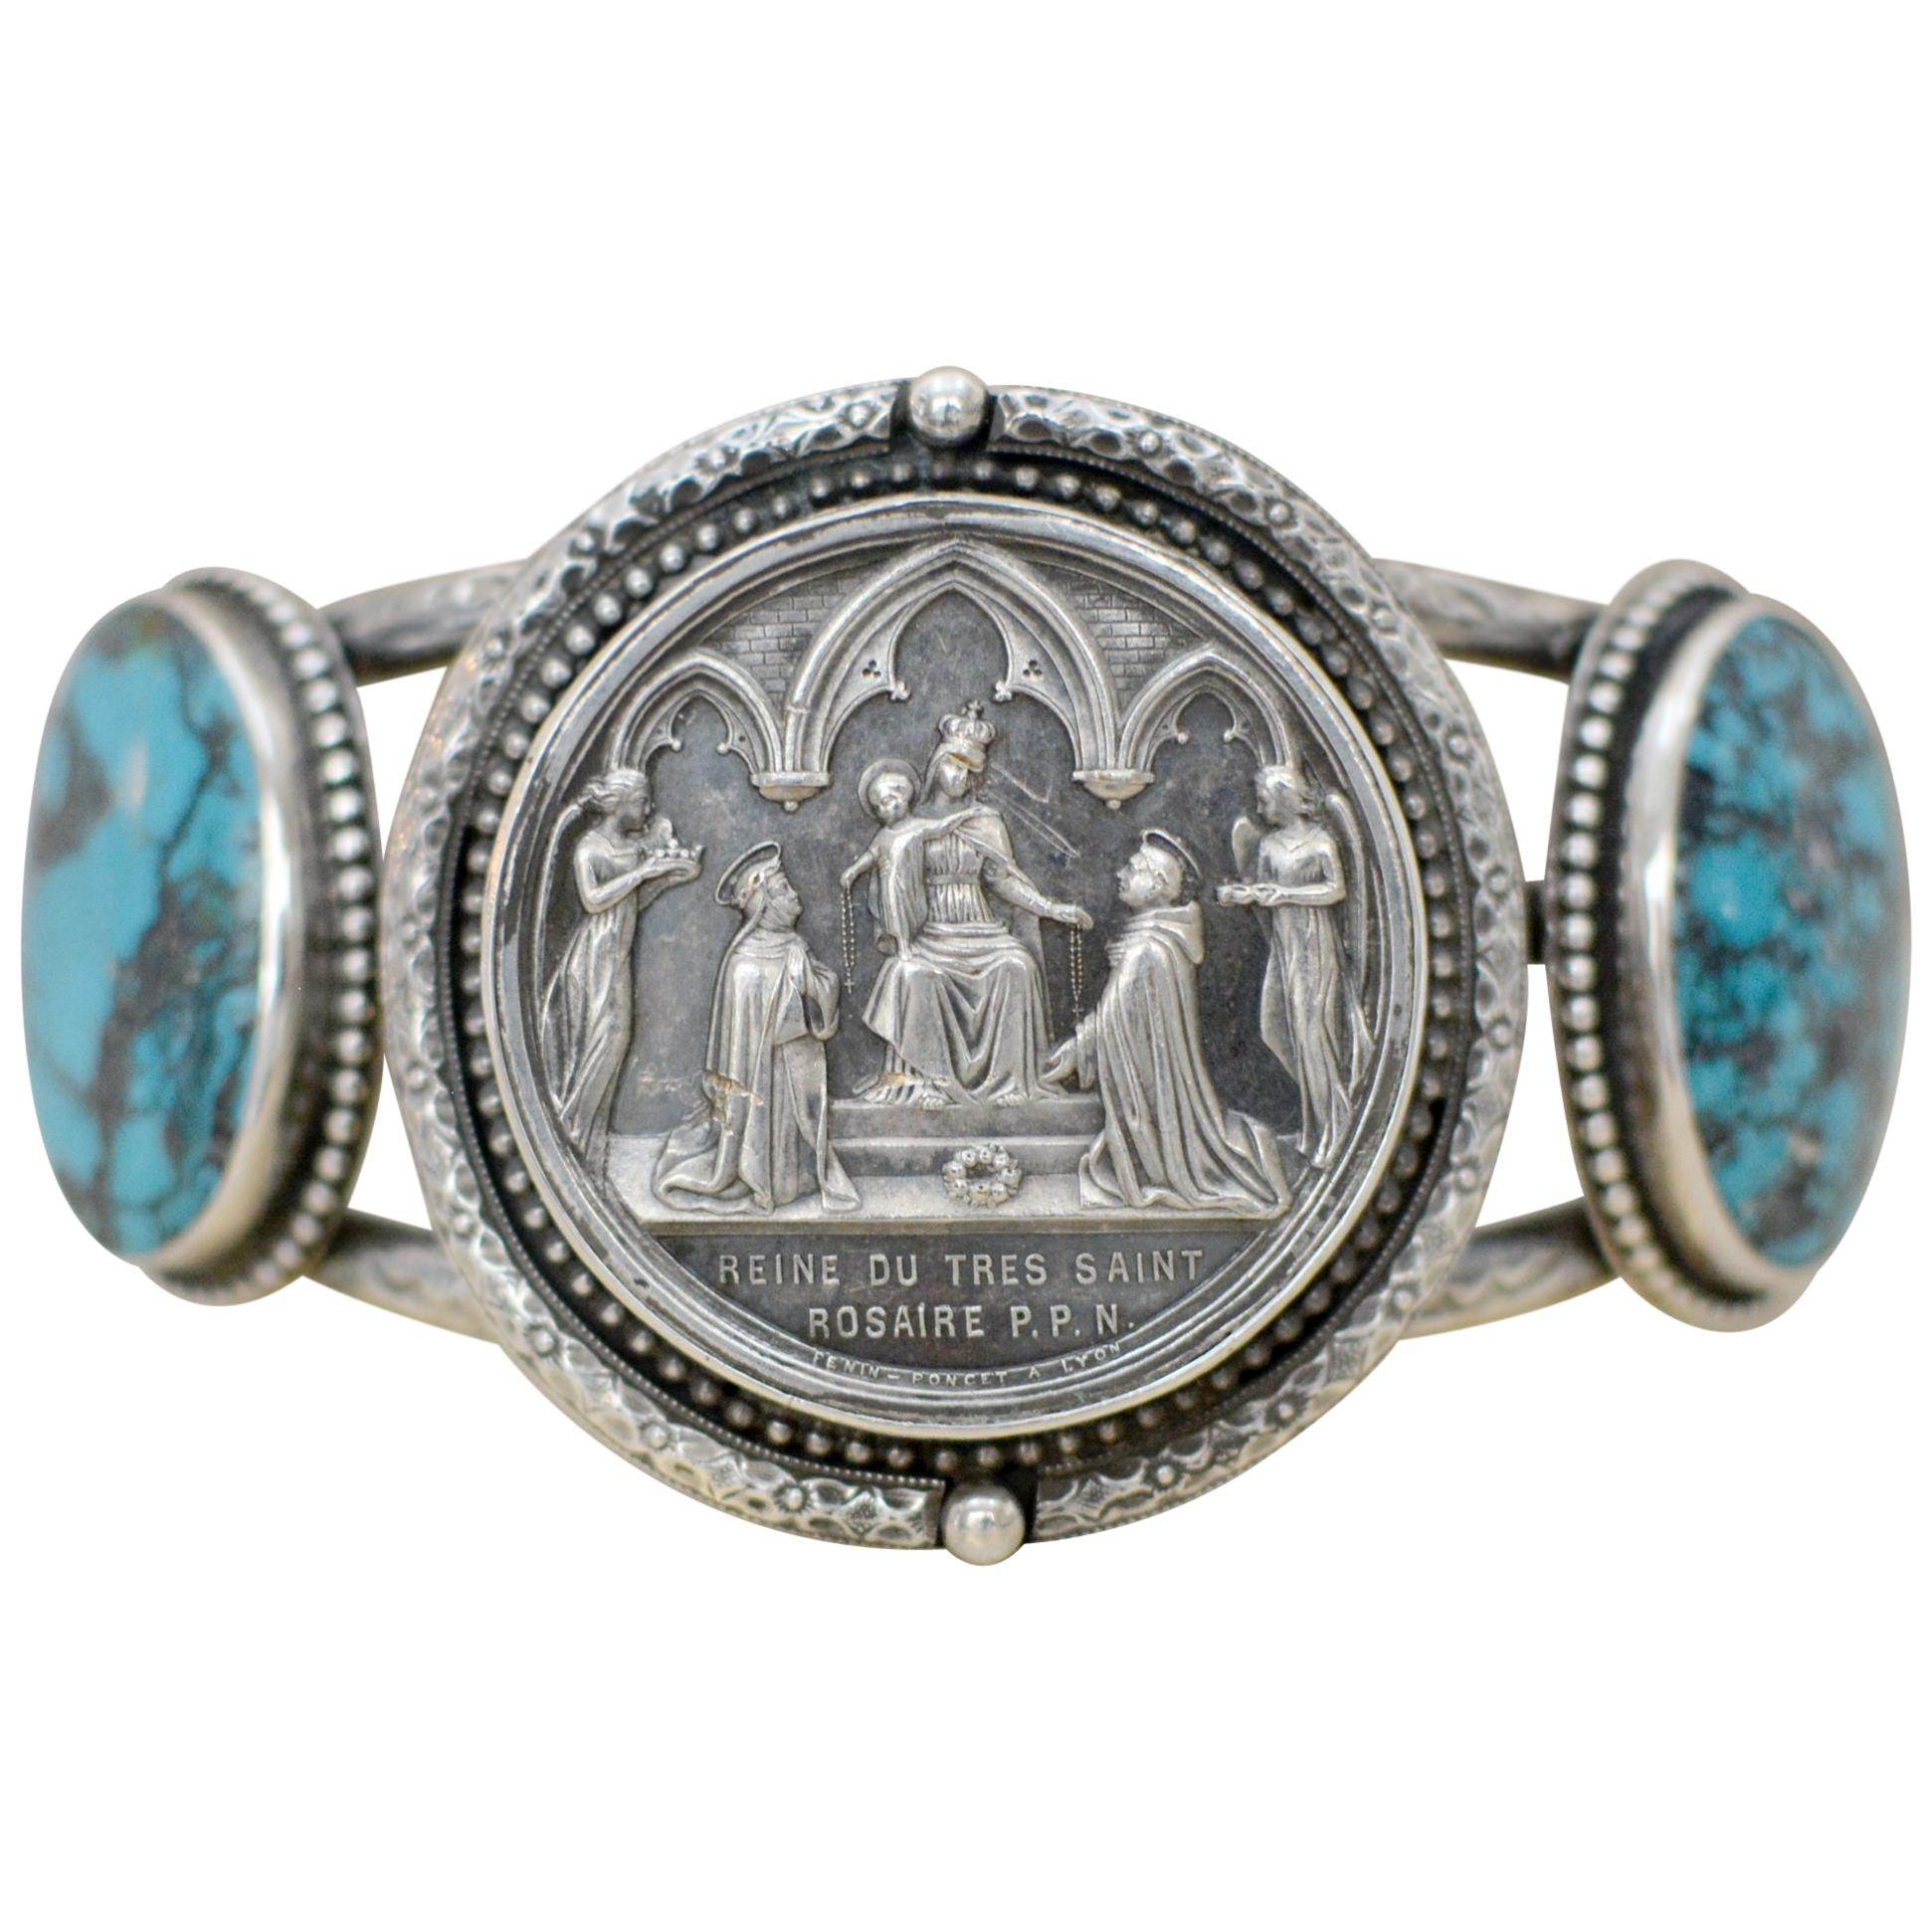 Jill Garber Antique French Wedding Medal with Turquoise Cuff Bracelet